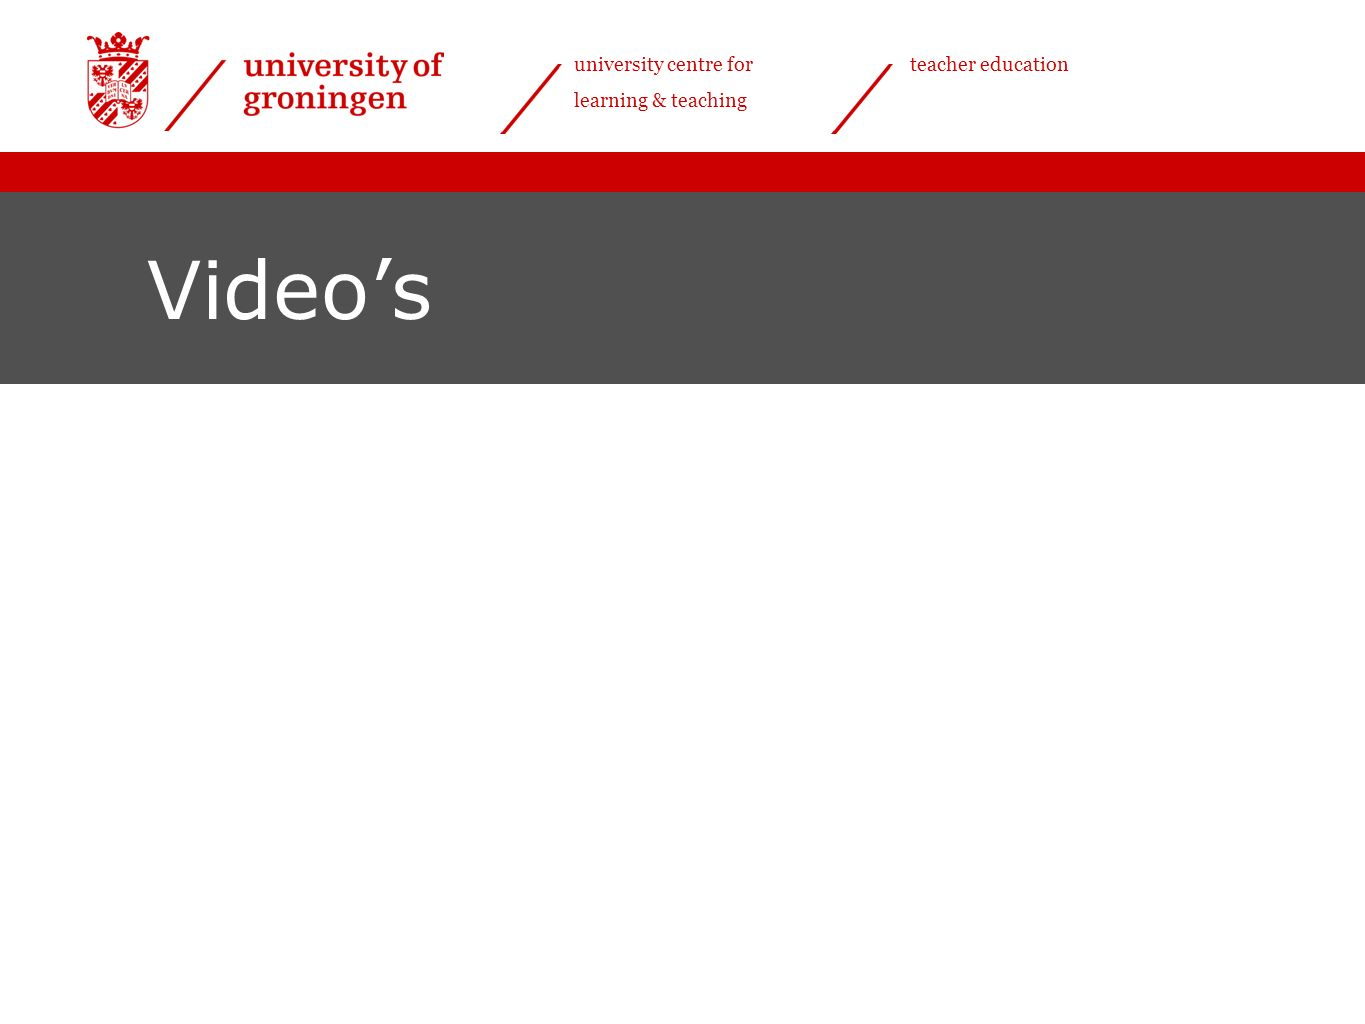 university centre for learning & teaching teacher education Video's